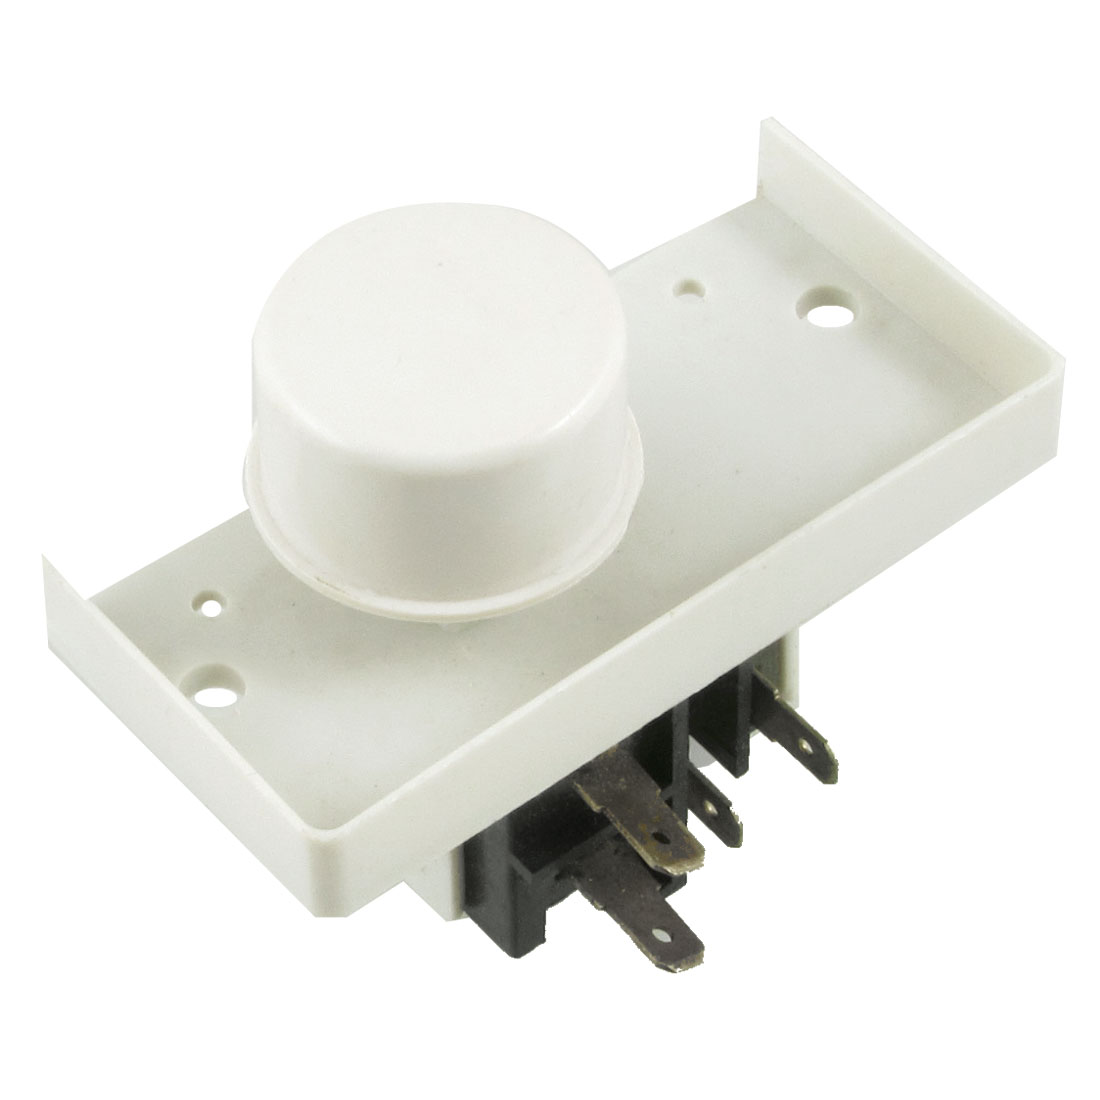 250V 4 Pins NO Latching Round Power Switch for Bell Washing Machine Washer